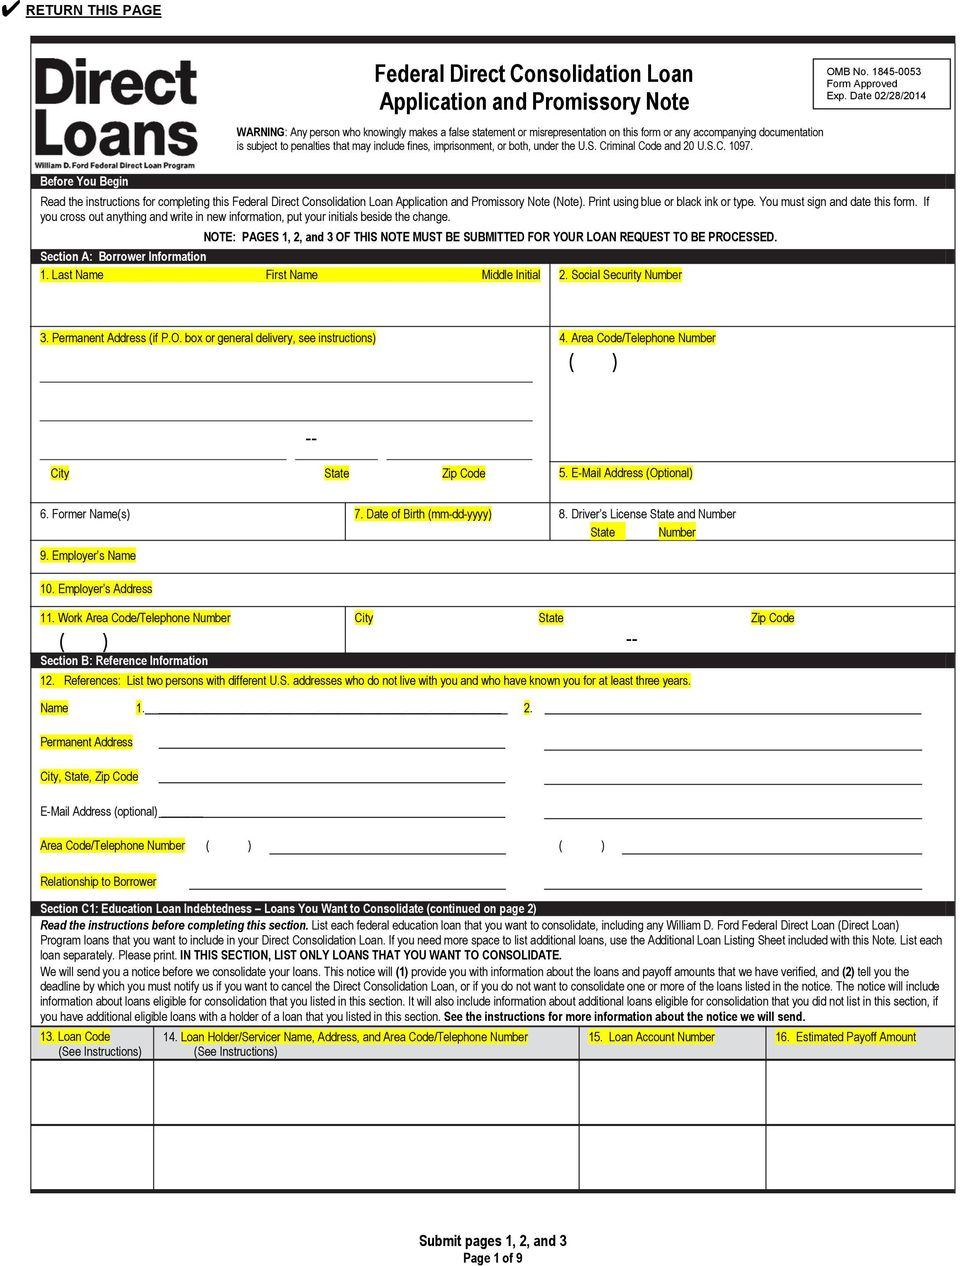 Date 02/28/2014 Before You Begin Read the instructions for completing this Federal Direct Consolidation Loan Application and Promissory Note (Note). Print using blue or black ink or type.